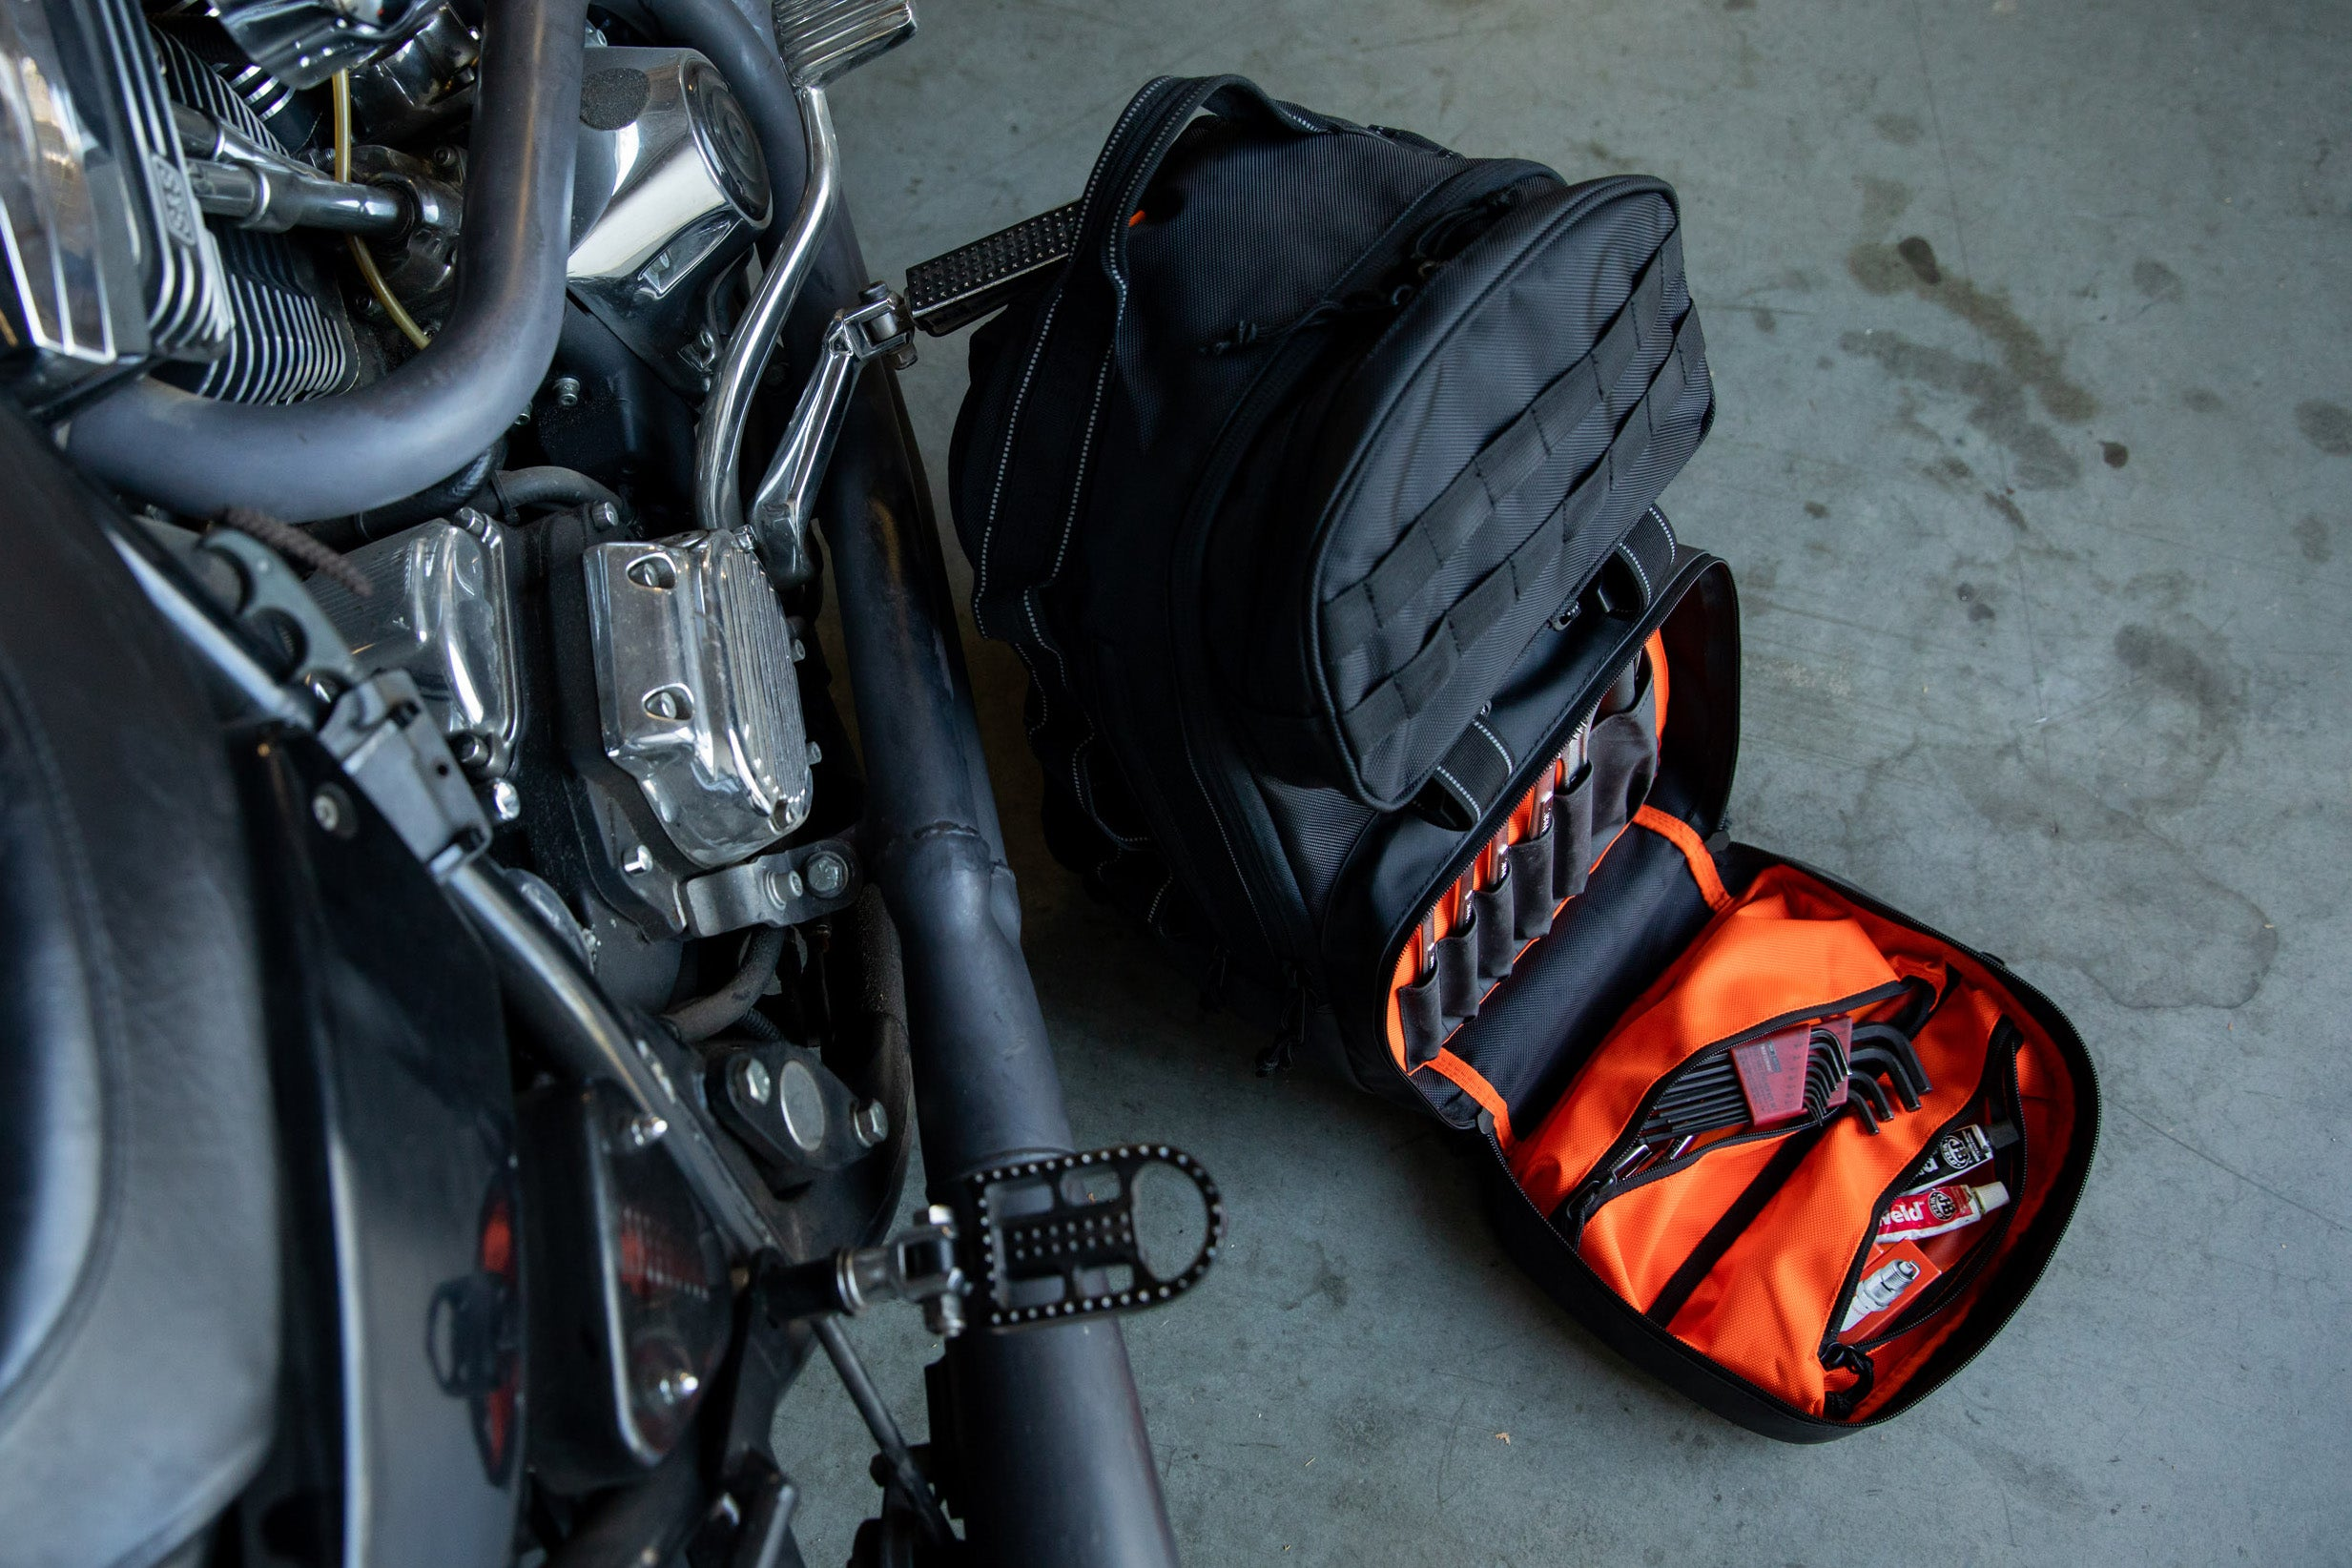 5 Christmas Gifts for the Motorcycle Enthusiast - Exfil-48 Backpack